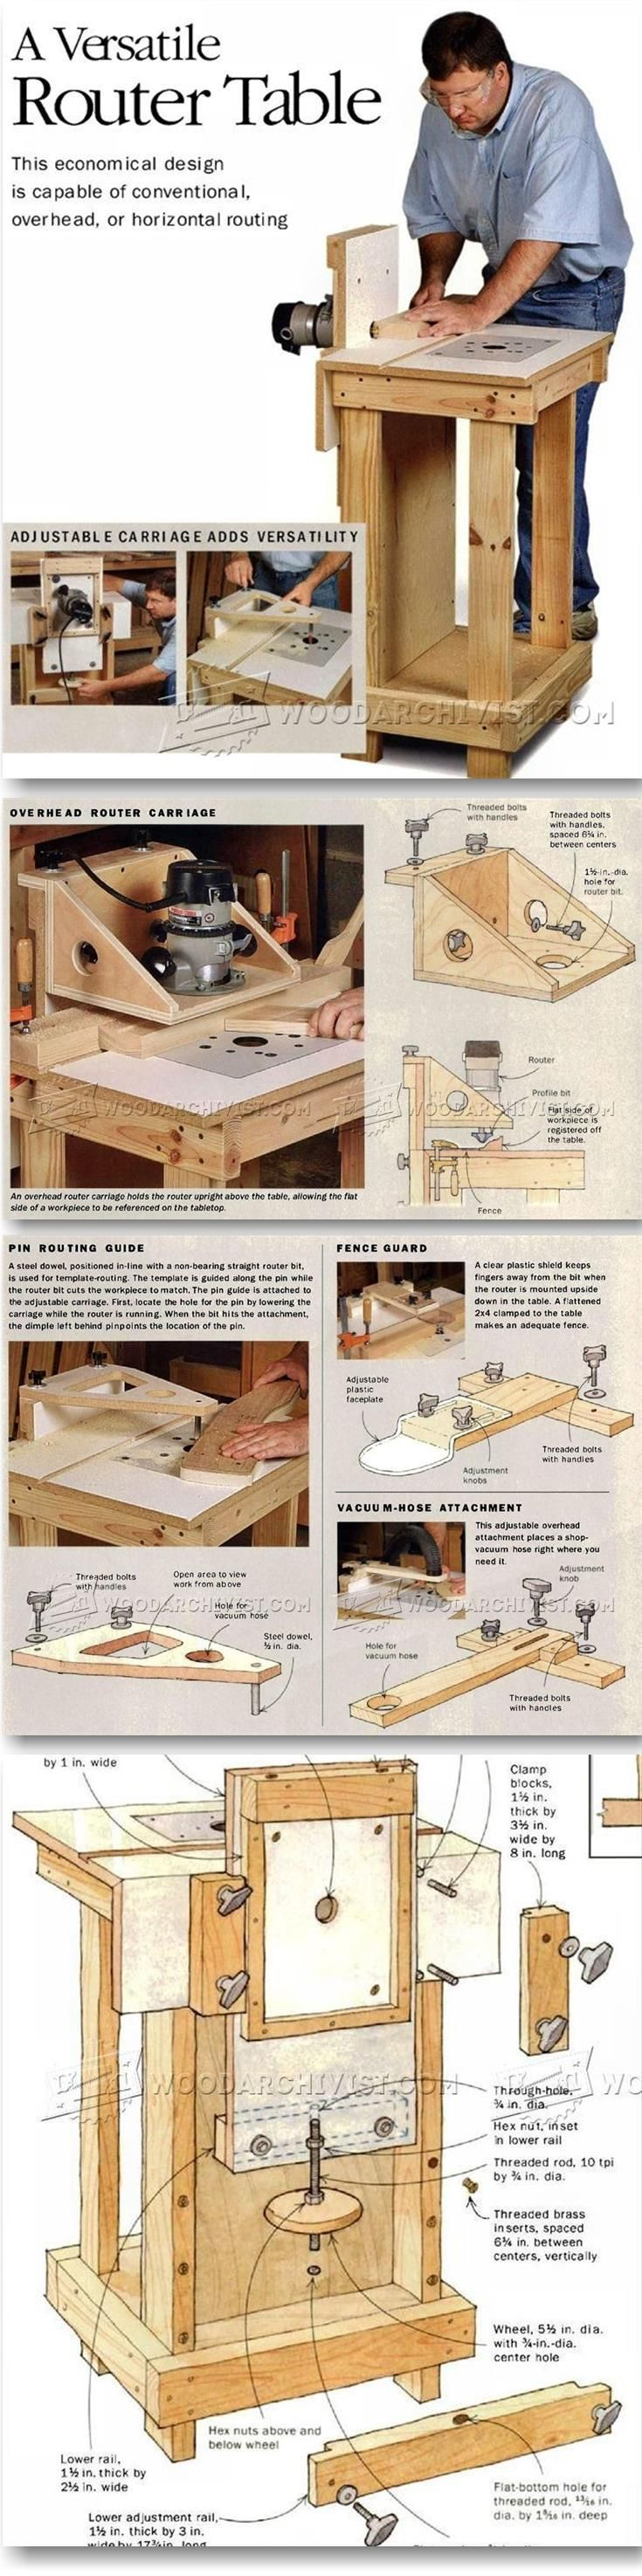 Horizontal Router Table Plans – Router Tips, Jigs and Fixtures | WoodArchivist.com